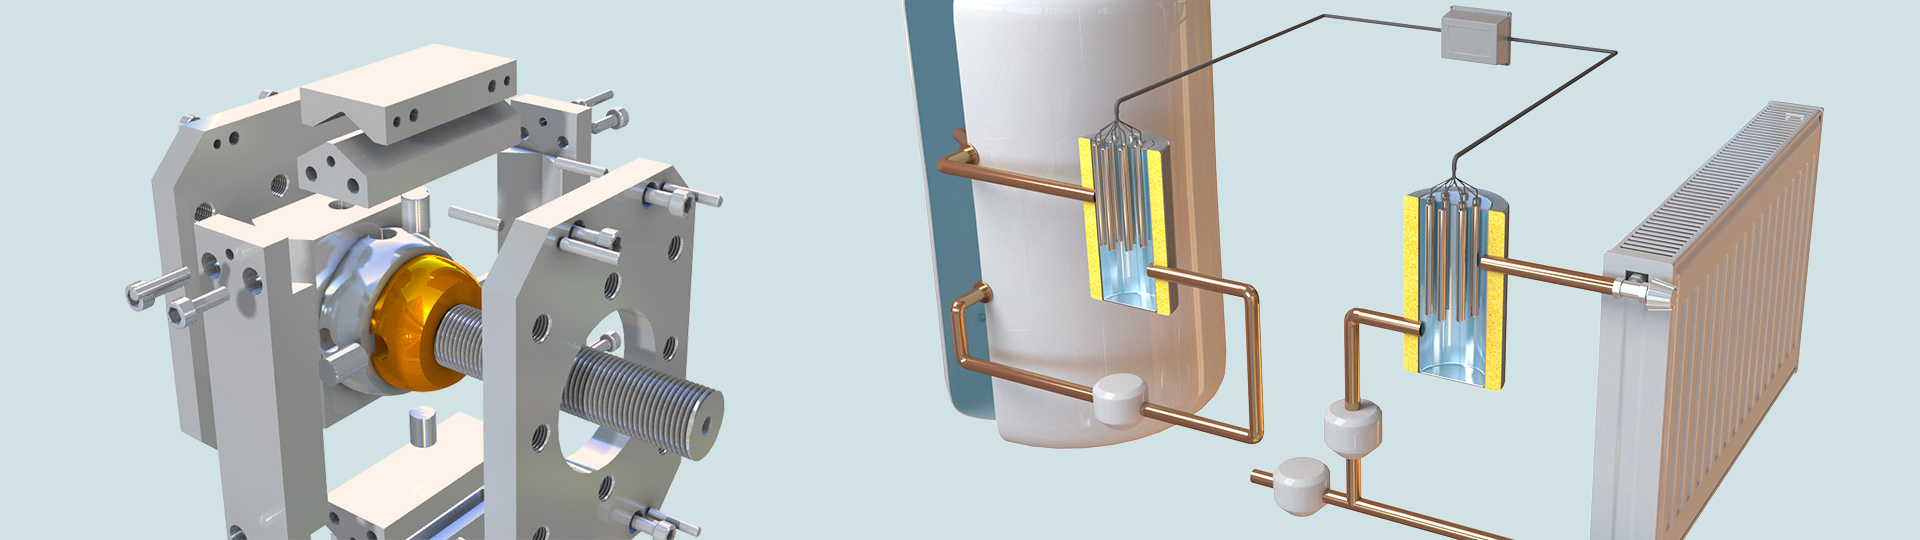 3D Product Visualization of central heating system